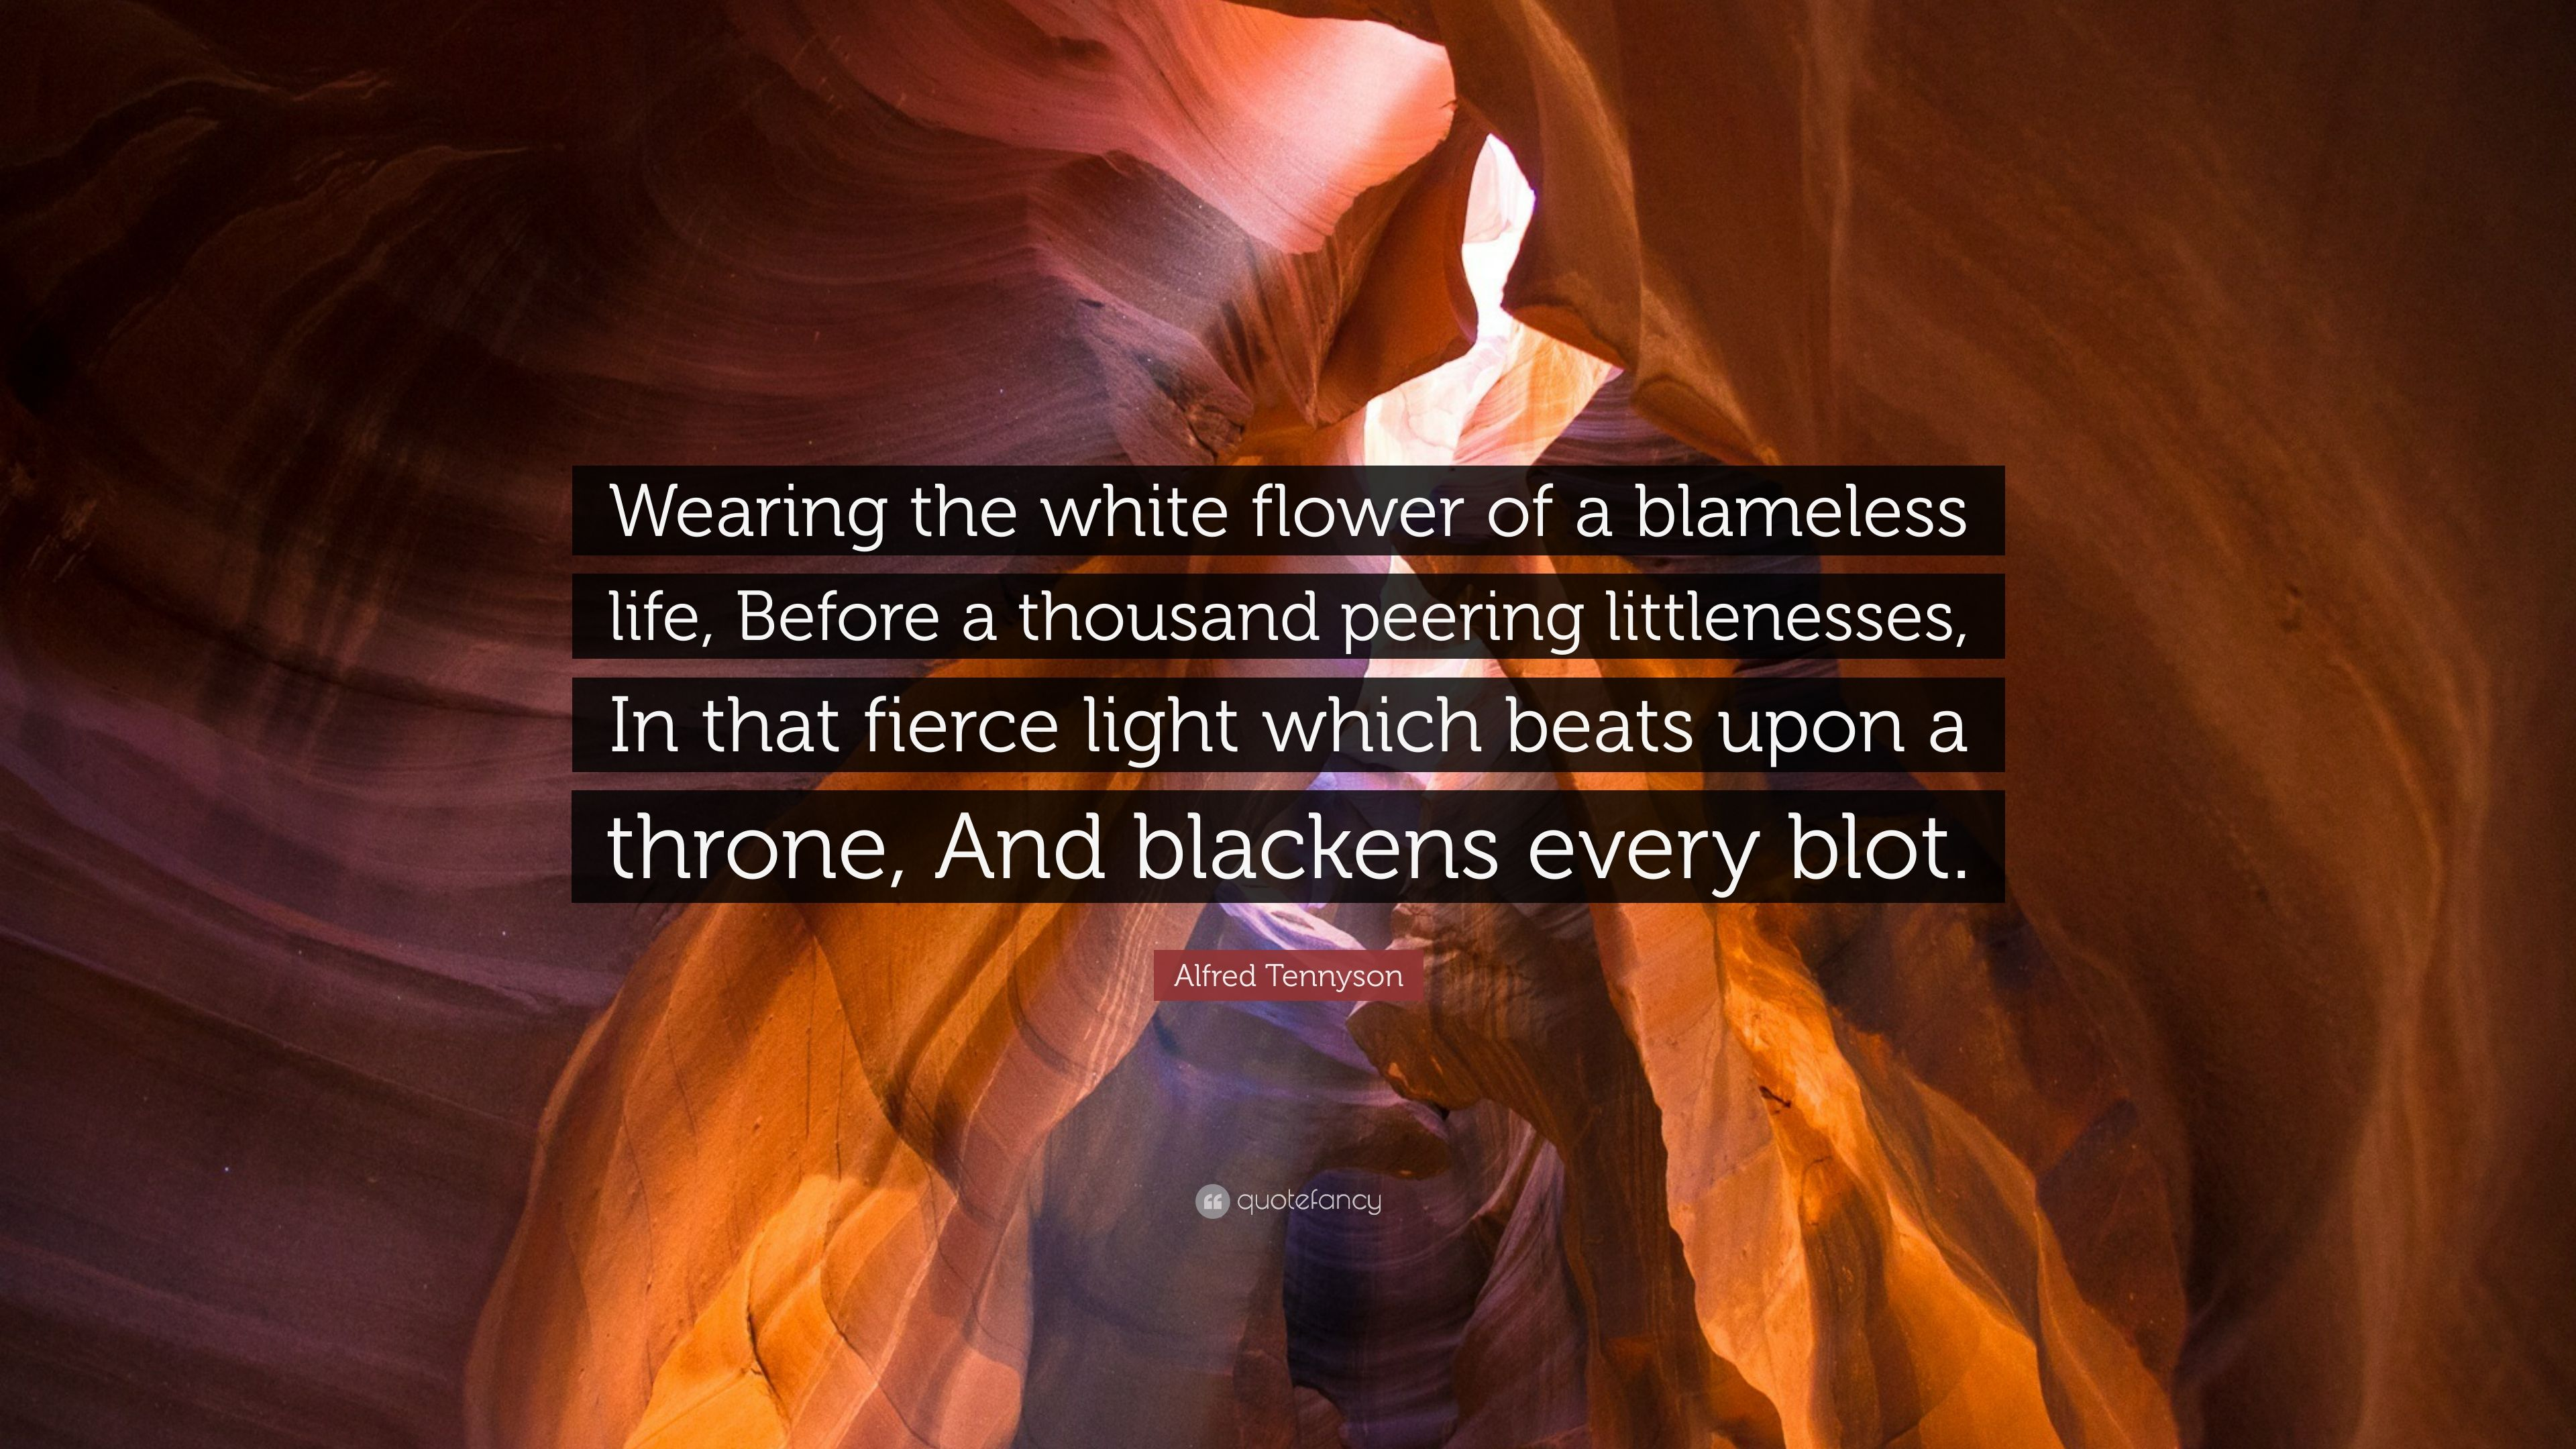 Alfred Tennyson Quote Wearing The White Flower Of A Blameless Life